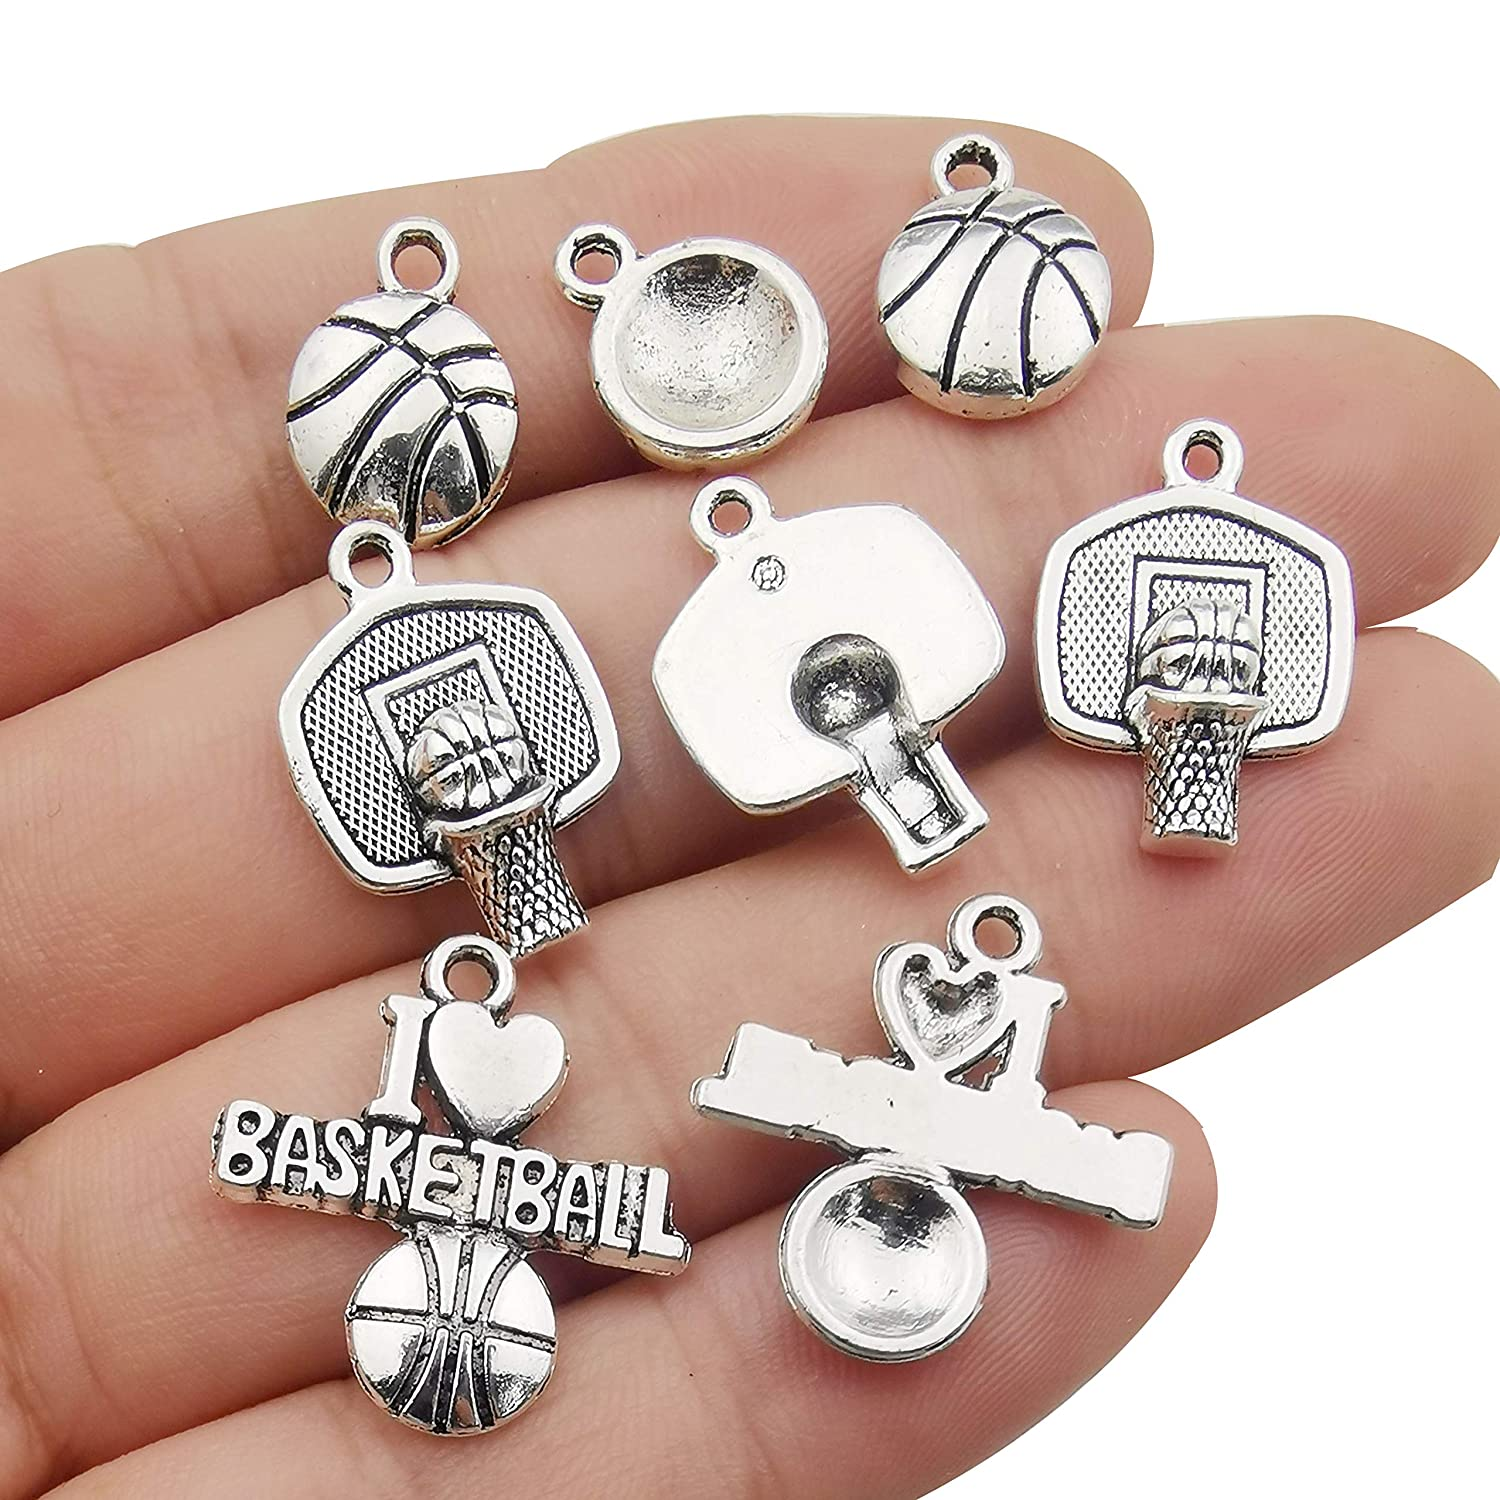 Ball Sports Charms-45pcs Alloy Love Volleyball Ball Sports Fitness Charms Pendants Beads Charms for DIY Jewelry Making Bracelet Necklace Earrings Parts M322